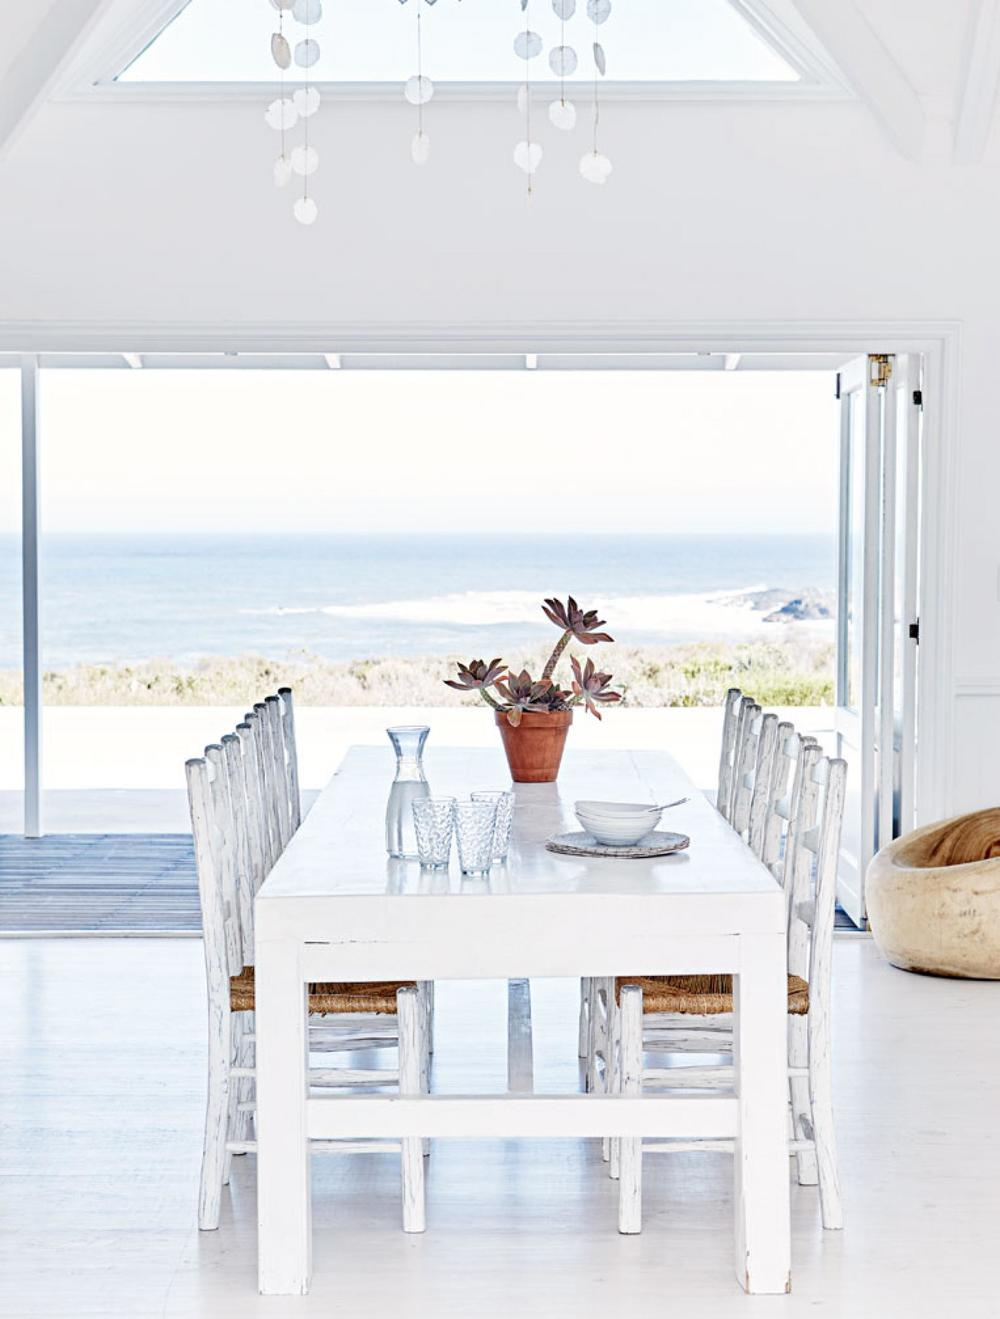 Detail Collective | Blog | Lifestyle | South African Beach House | Image: via Inside Out/Bureaux